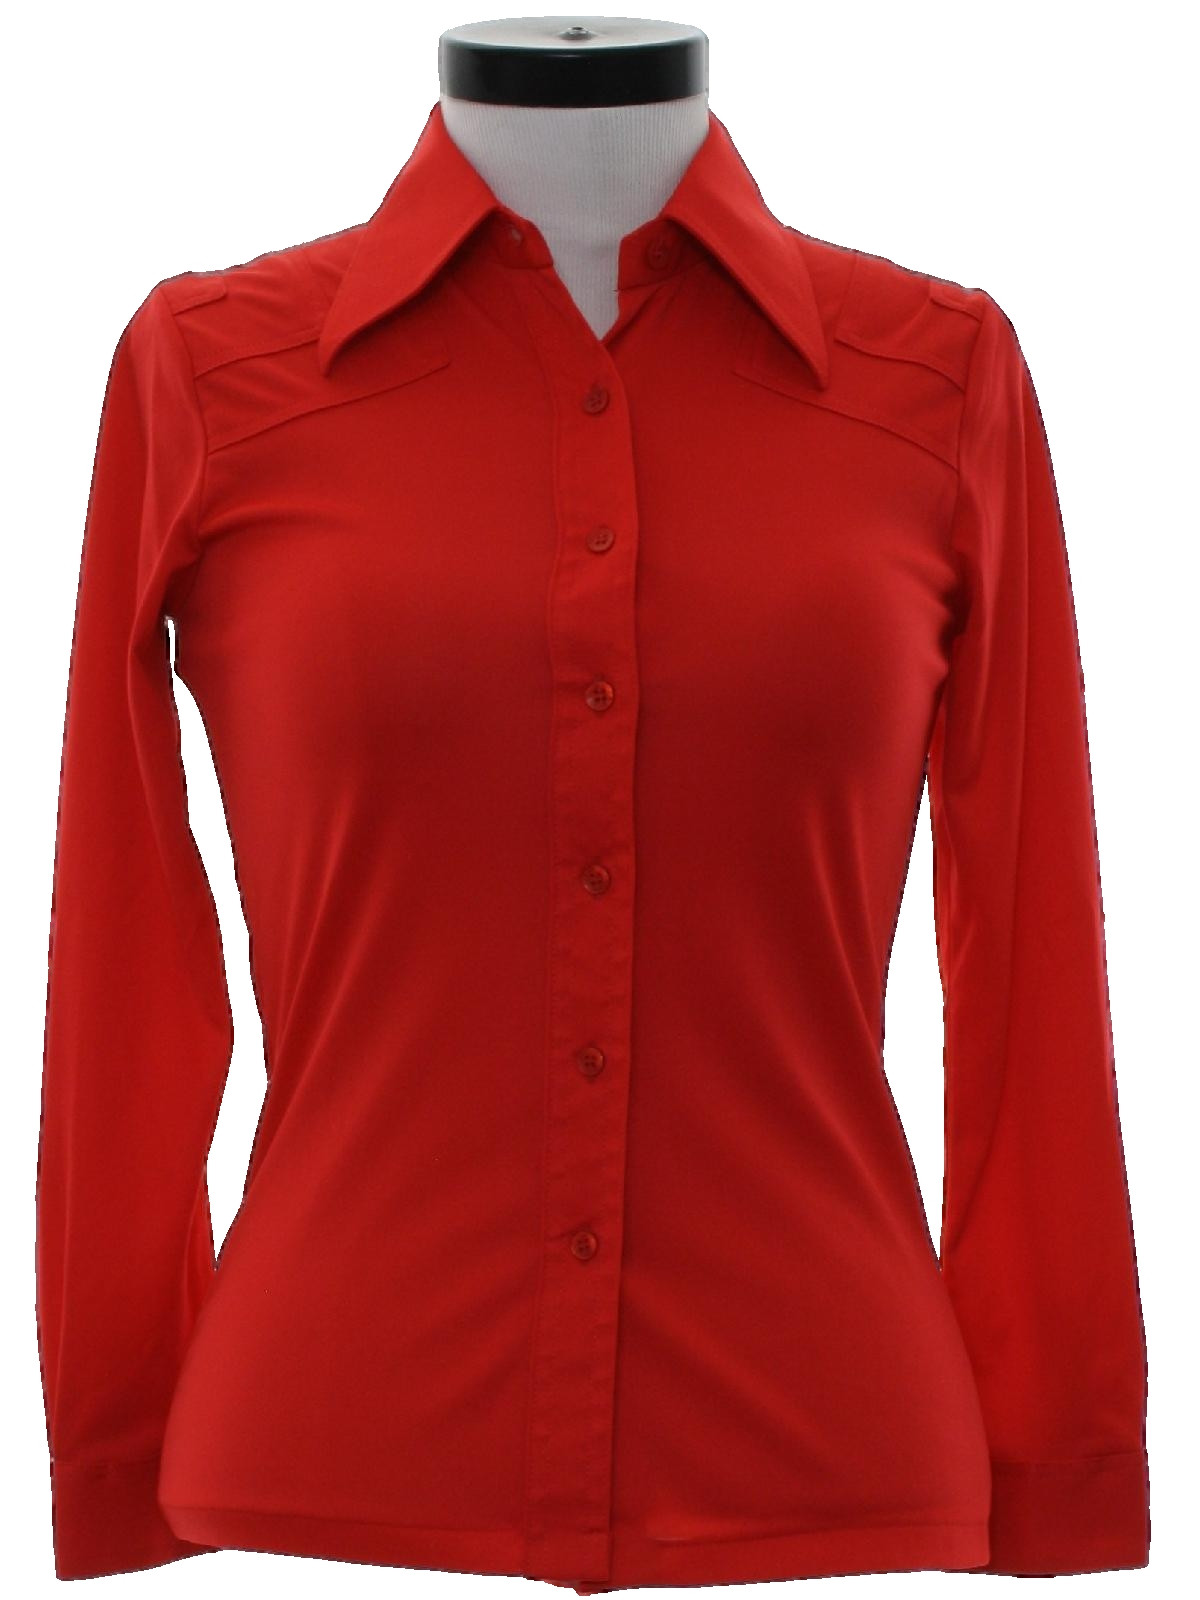 1970 39 s disco shirt kmart 70s kmart womens red for Kmart button up shirts